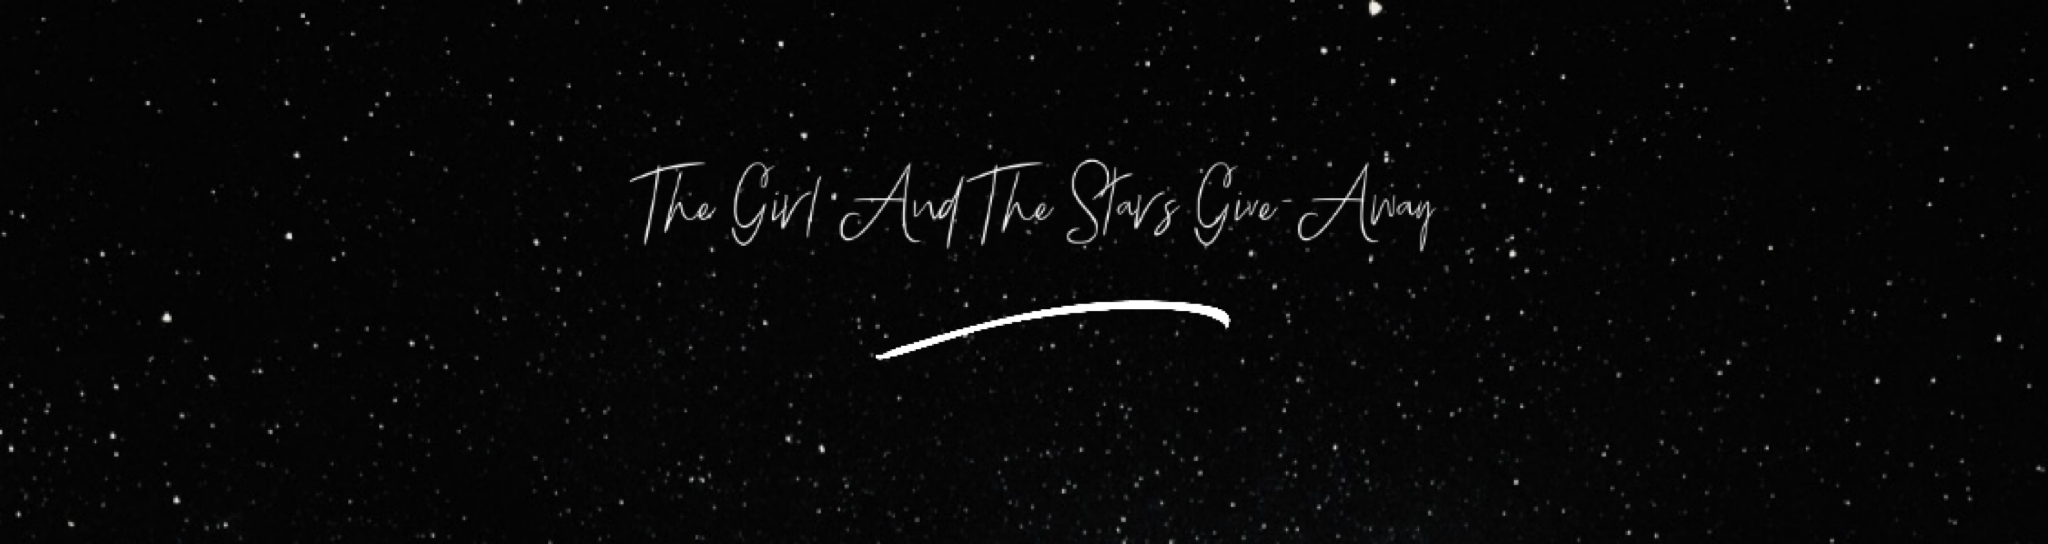 Announcing the winners of The Girl and the Stars giveaway